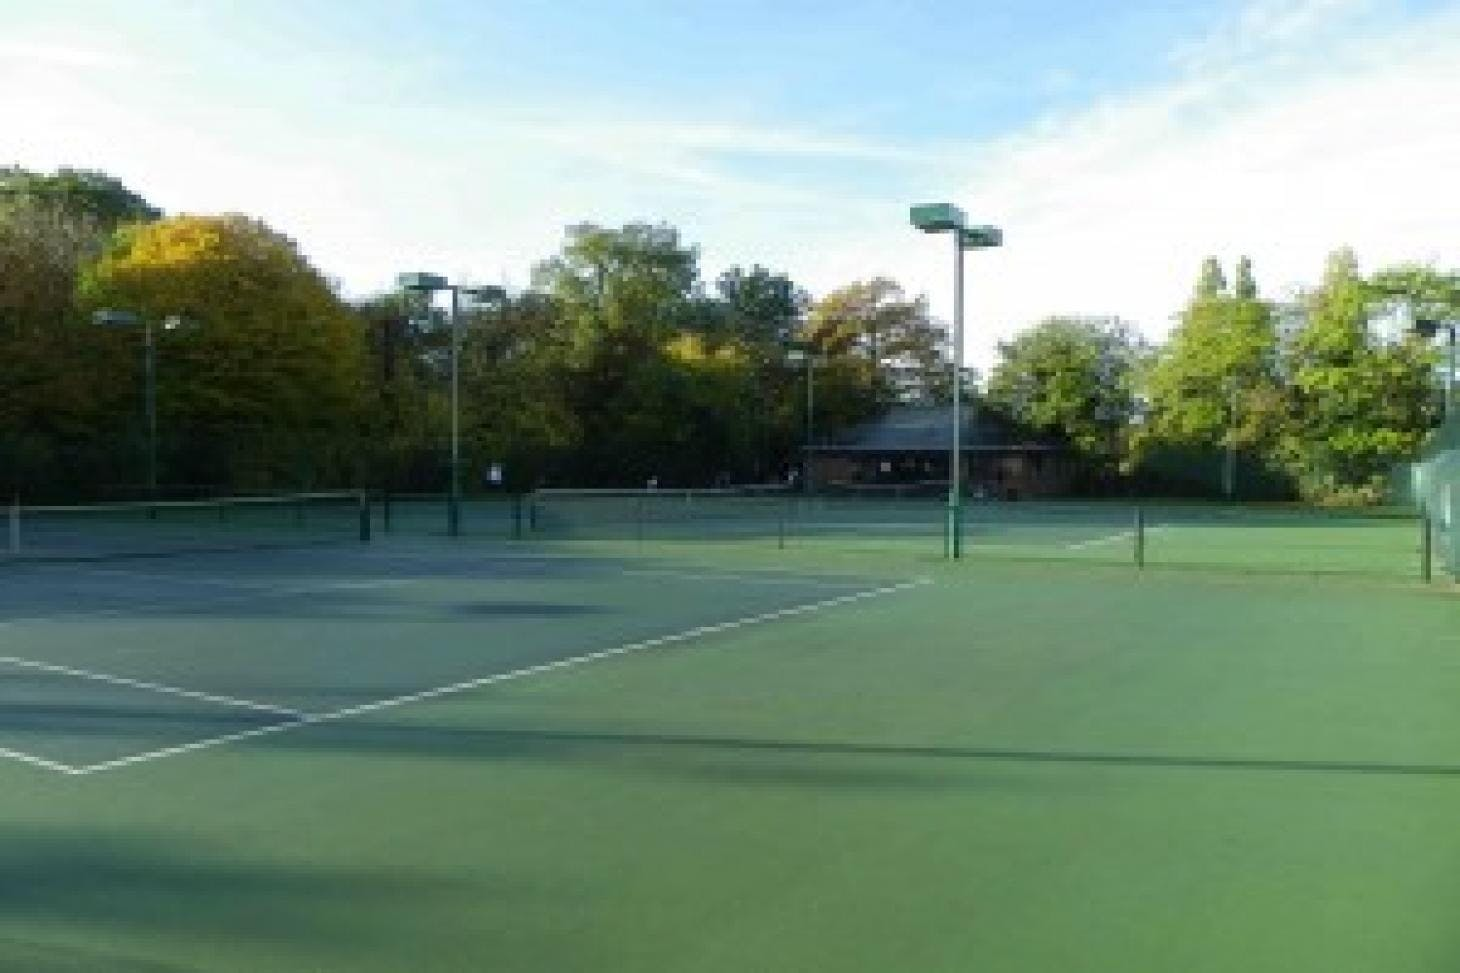 Old College Lawn Tennis & Croquet Club Outdoor | Clay tennis court